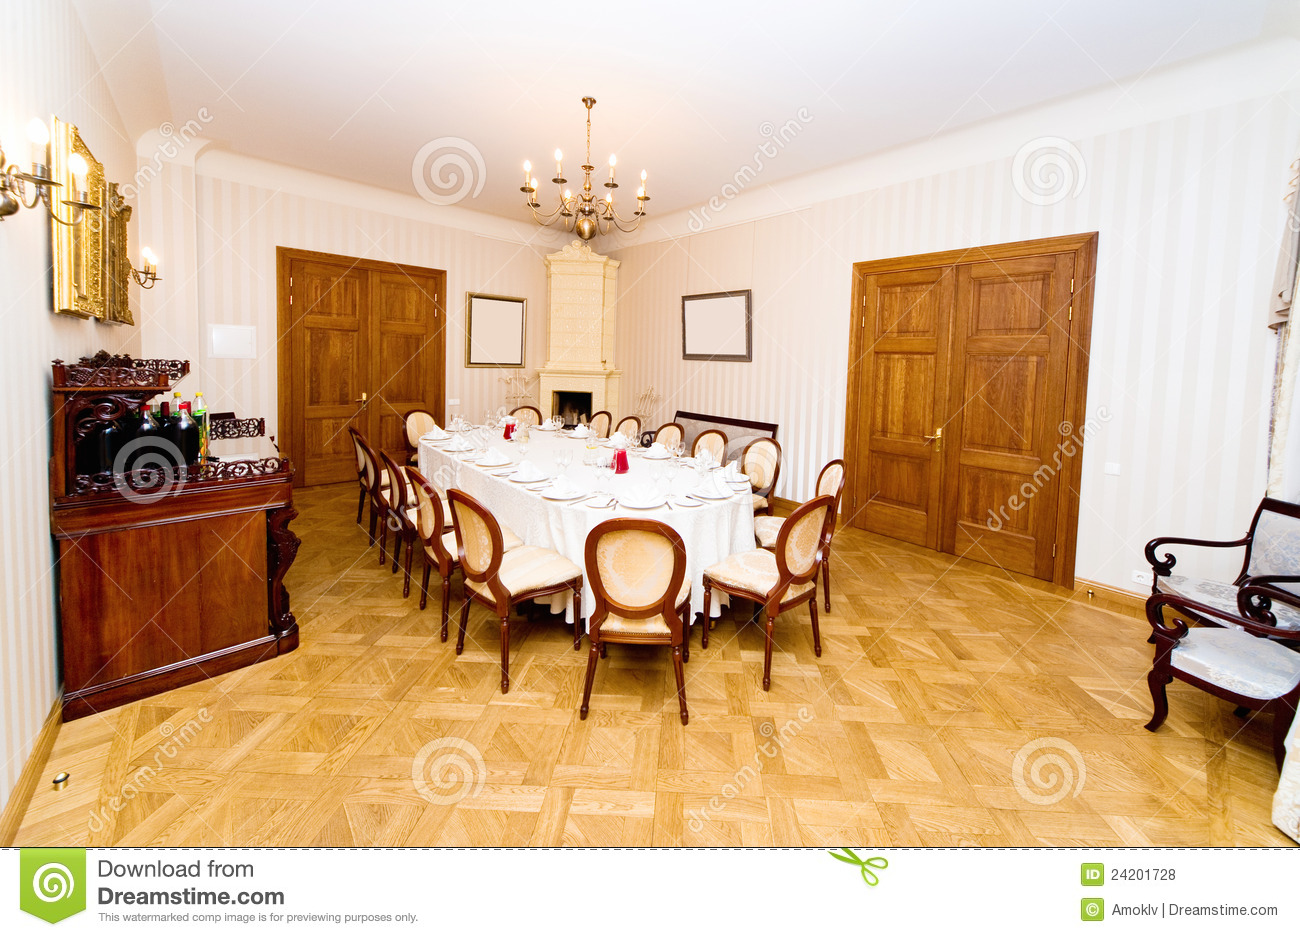 Vintage style dining room royalty free stock photos for Vintage style dining room ideas